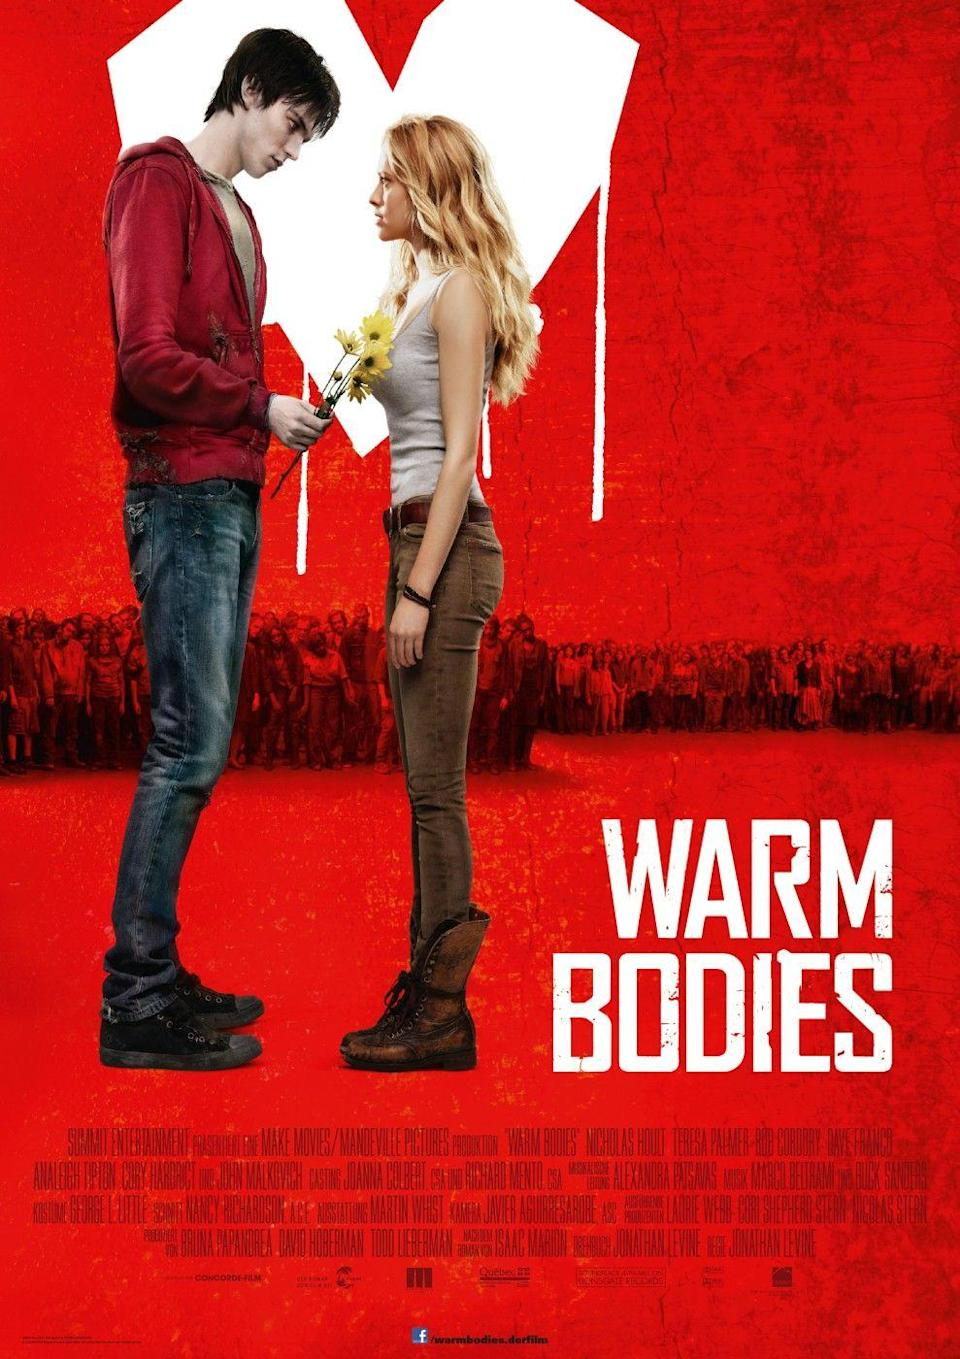 """<p>Sometimes you can't resist a good rom-com ... especially if the love story is between a zombie and a human. Based on <a href=""""https://www.amazon.com/Warm-Bodies-Novel/dp/1439192324?tag=syn-yahoo-20&ascsubtag=%5Bartid%7C10055.g.33546030%5Bsrc%7Cyahoo-us"""" rel=""""nofollow noopener"""" target=""""_blank"""" data-ylk=""""slk:a novel of the same name"""" class=""""link rapid-noclick-resp"""">a novel of the same name</a> (which in turn was inspired by Shakespeare's <em>Romeo and Juliet</em>), this offbeat flick focuses on the unique relationship between a young woman (Teresa Palmer) and a zombie named """"R"""" (Nicholas Hoult).<br><br><a class=""""link rapid-noclick-resp"""" href=""""https://www.amazon.com/Warm-Bodies-Nicholas-Hoult/dp/B00CL50KDY?tag=syn-yahoo-20&ascsubtag=%5Bartid%7C10055.g.33546030%5Bsrc%7Cyahoo-us"""" rel=""""nofollow noopener"""" target=""""_blank"""" data-ylk=""""slk:WATCH ON AMAZON"""">WATCH ON AMAZON</a> </p>"""